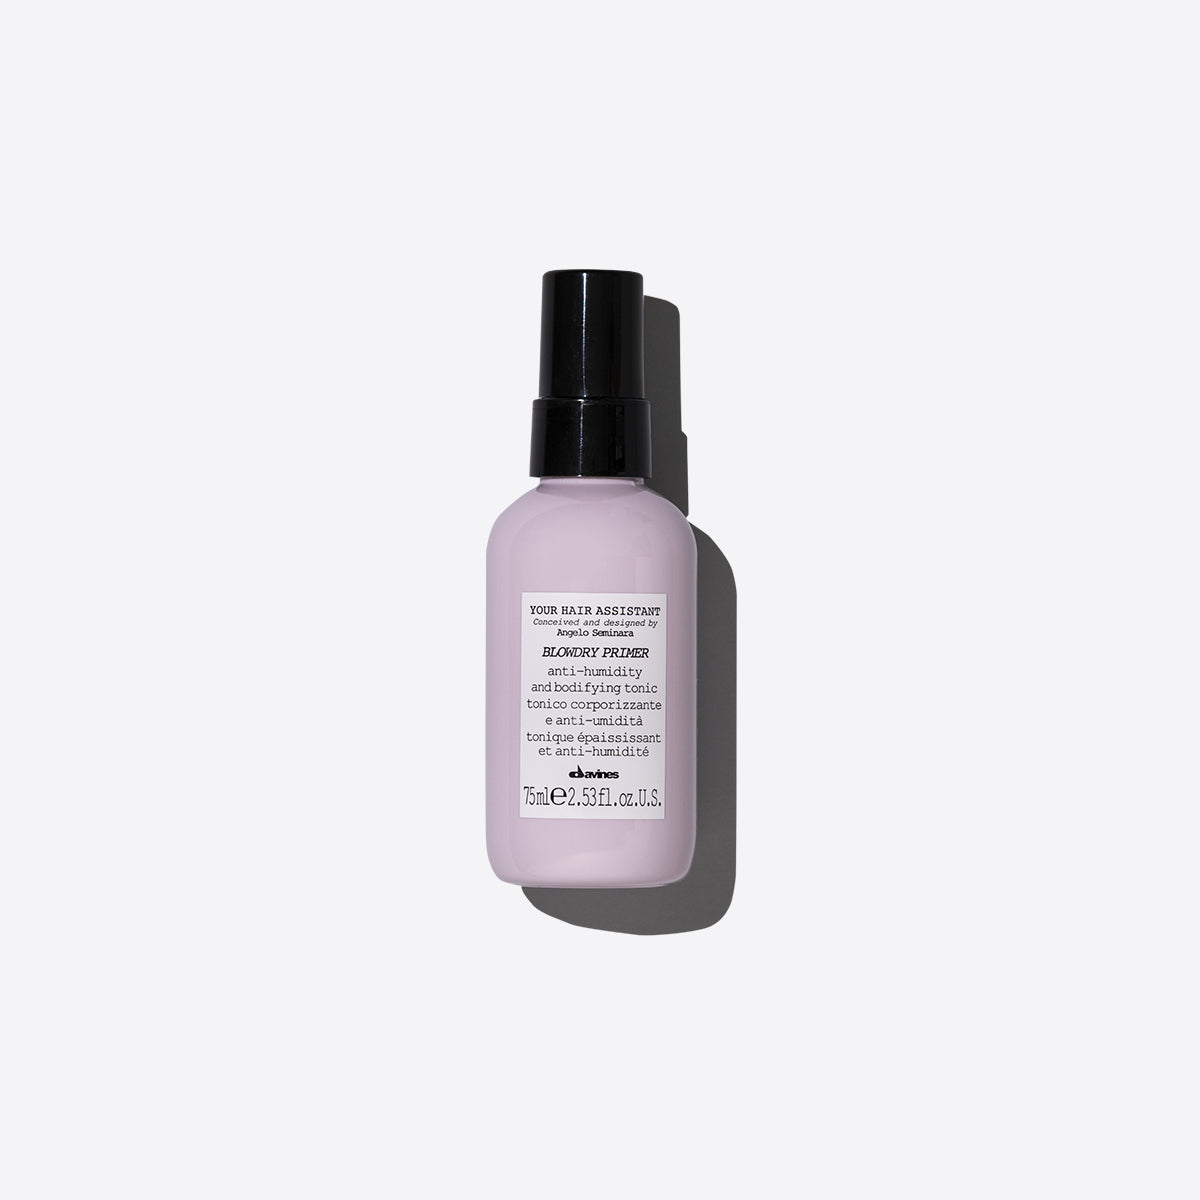 Blowdry Primer 1  75 ml / 2,54 fl.oz. Davines